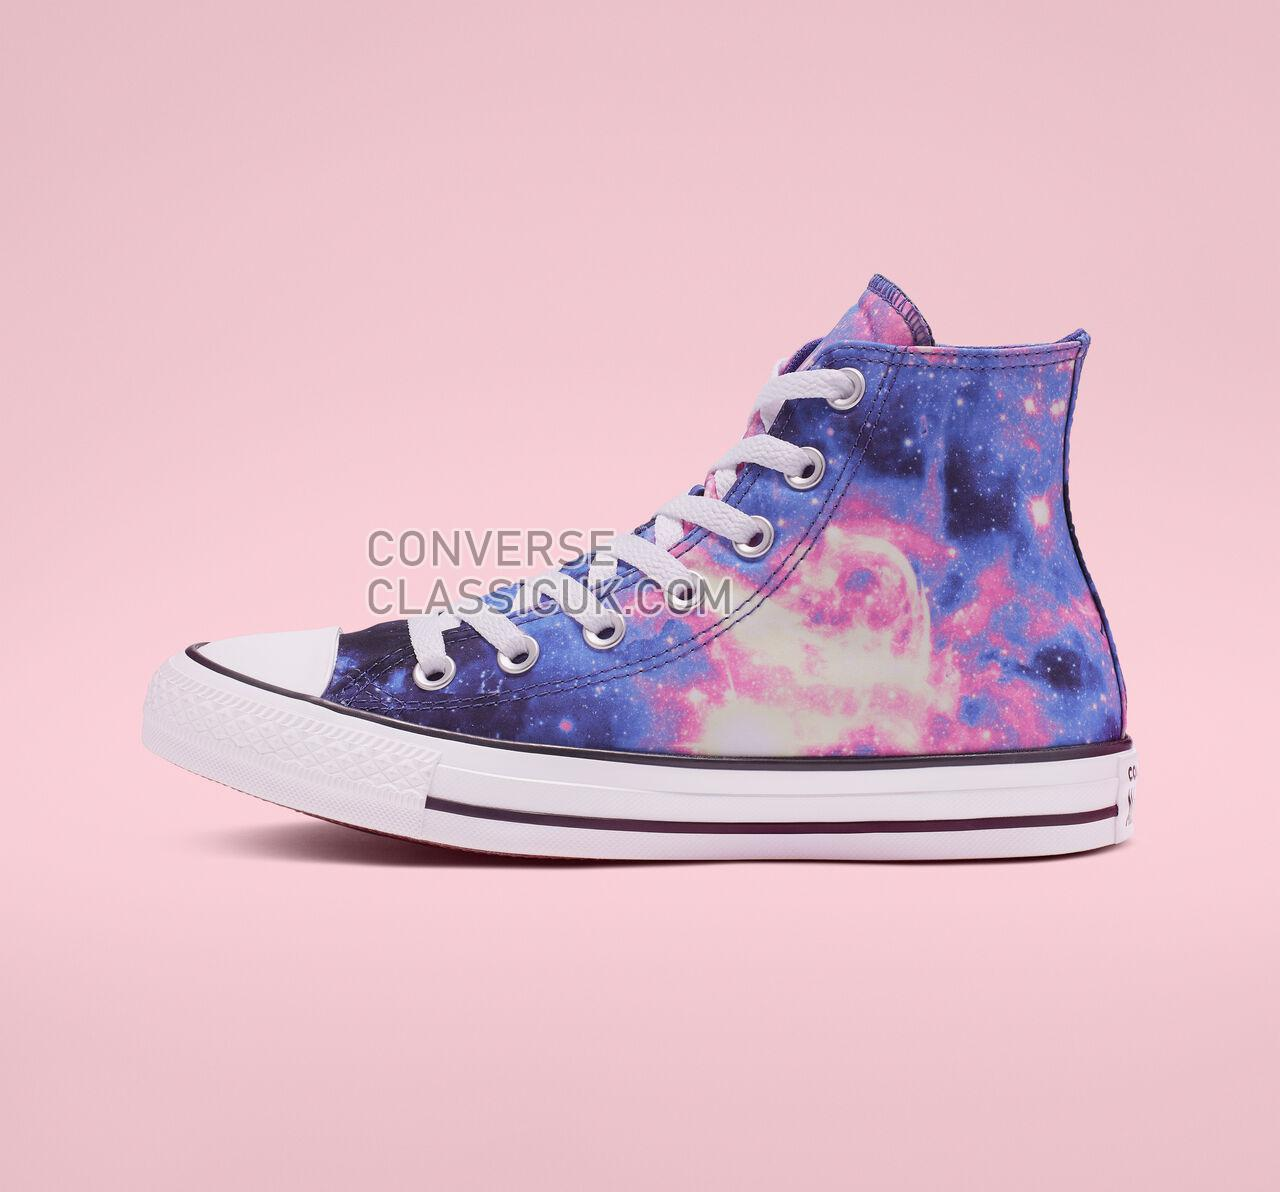 Converse Chuck Taylor All Star Miss Galaxy High Top Womens 565208F Lapis Blue/Black/Barely Rose Shoes